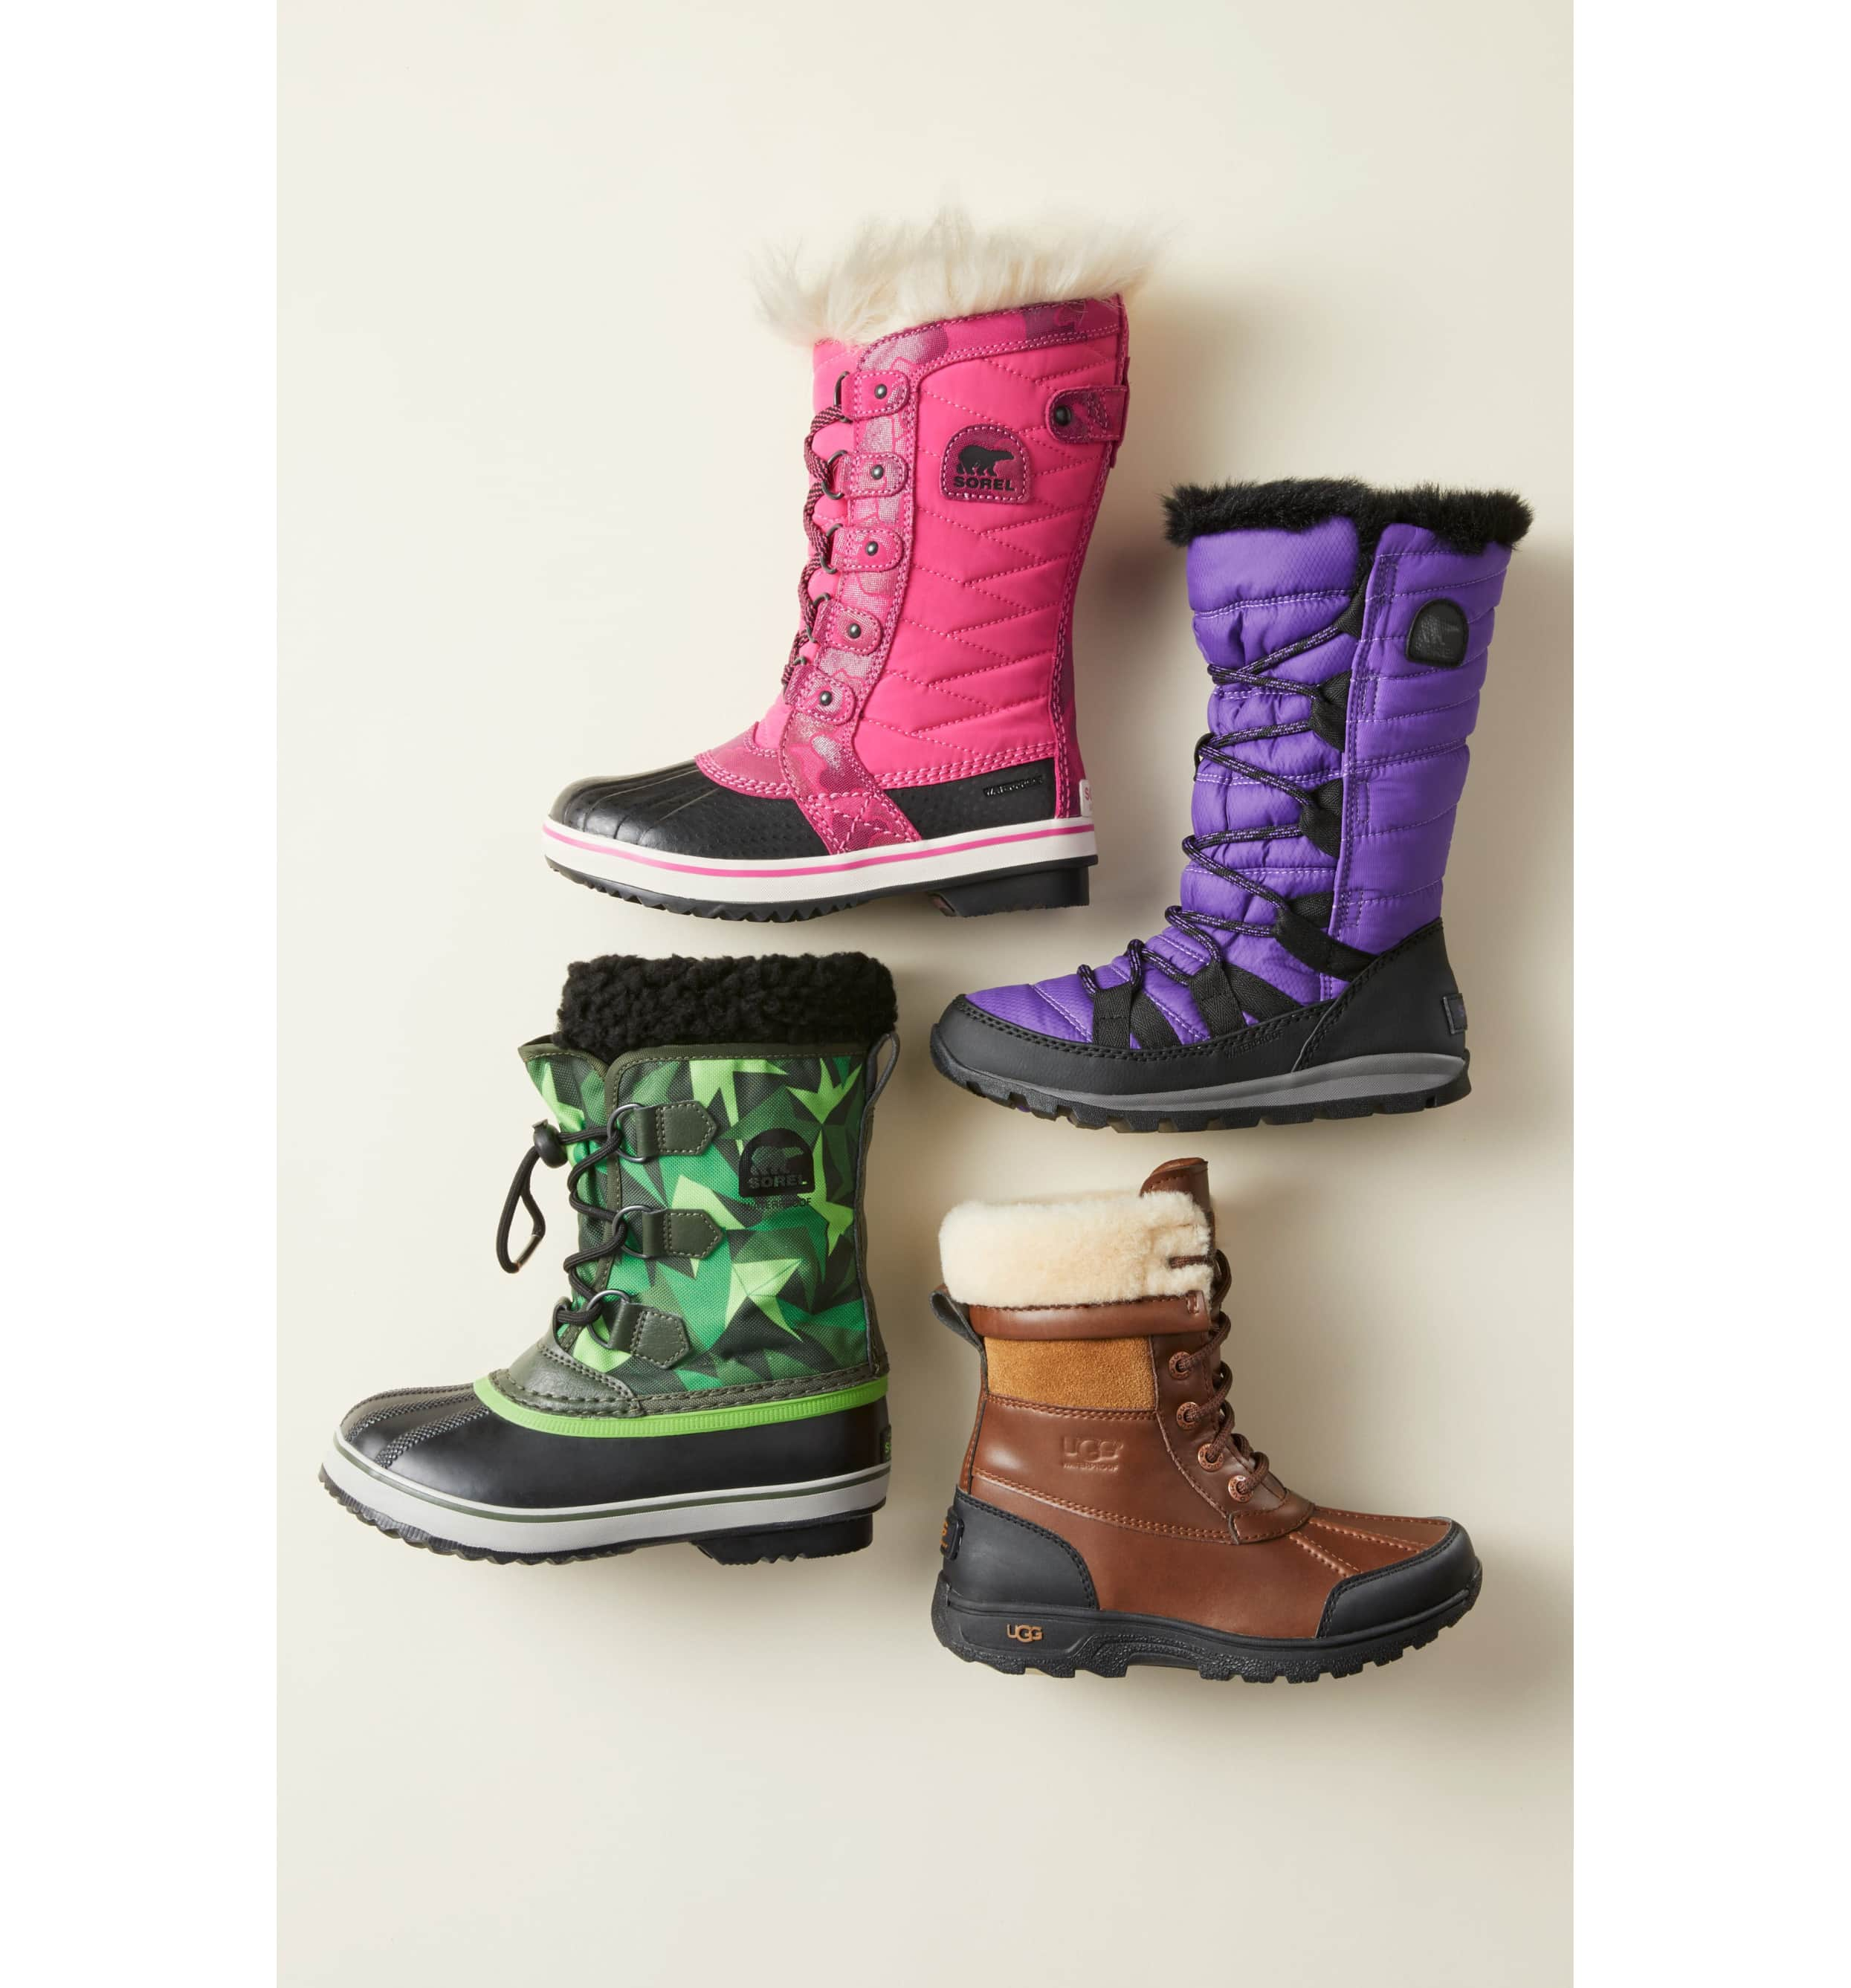 <p>A diamond-quilted shaft and smooth trim add textural interest to a waterproof boot topped with a fluffy cuff. Lots of color options!{&nbsp;} $100.00 (Image: Nordstrom){&nbsp;}</p><p></p>